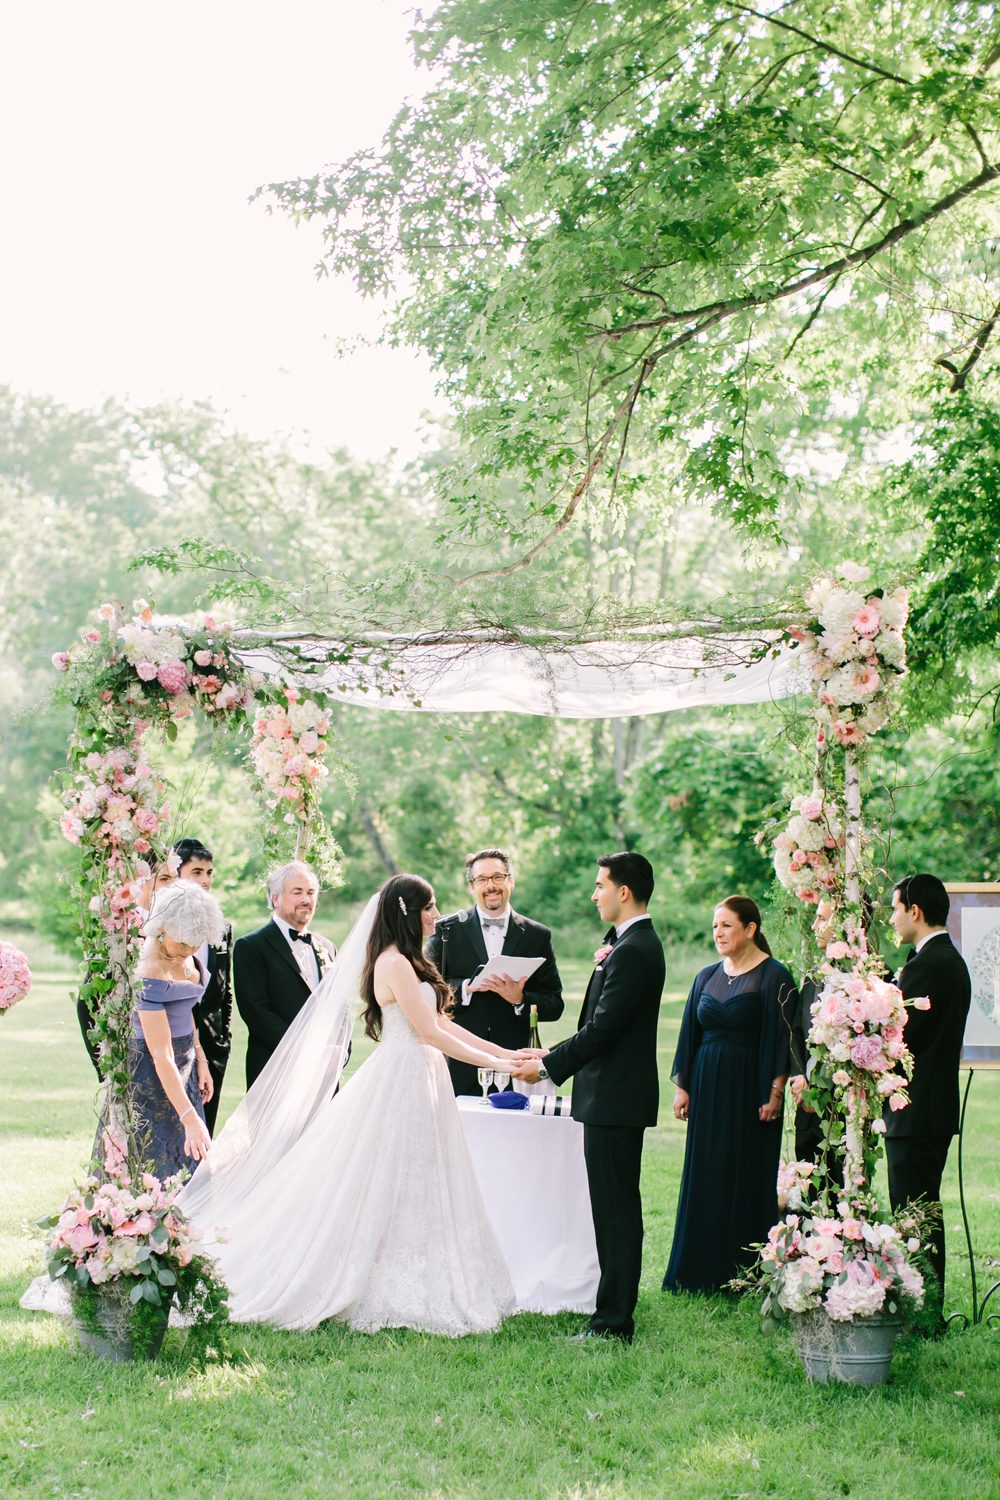 Outdoor wedding ceremony chuppah at the Inn at Barley Sheaf Farm